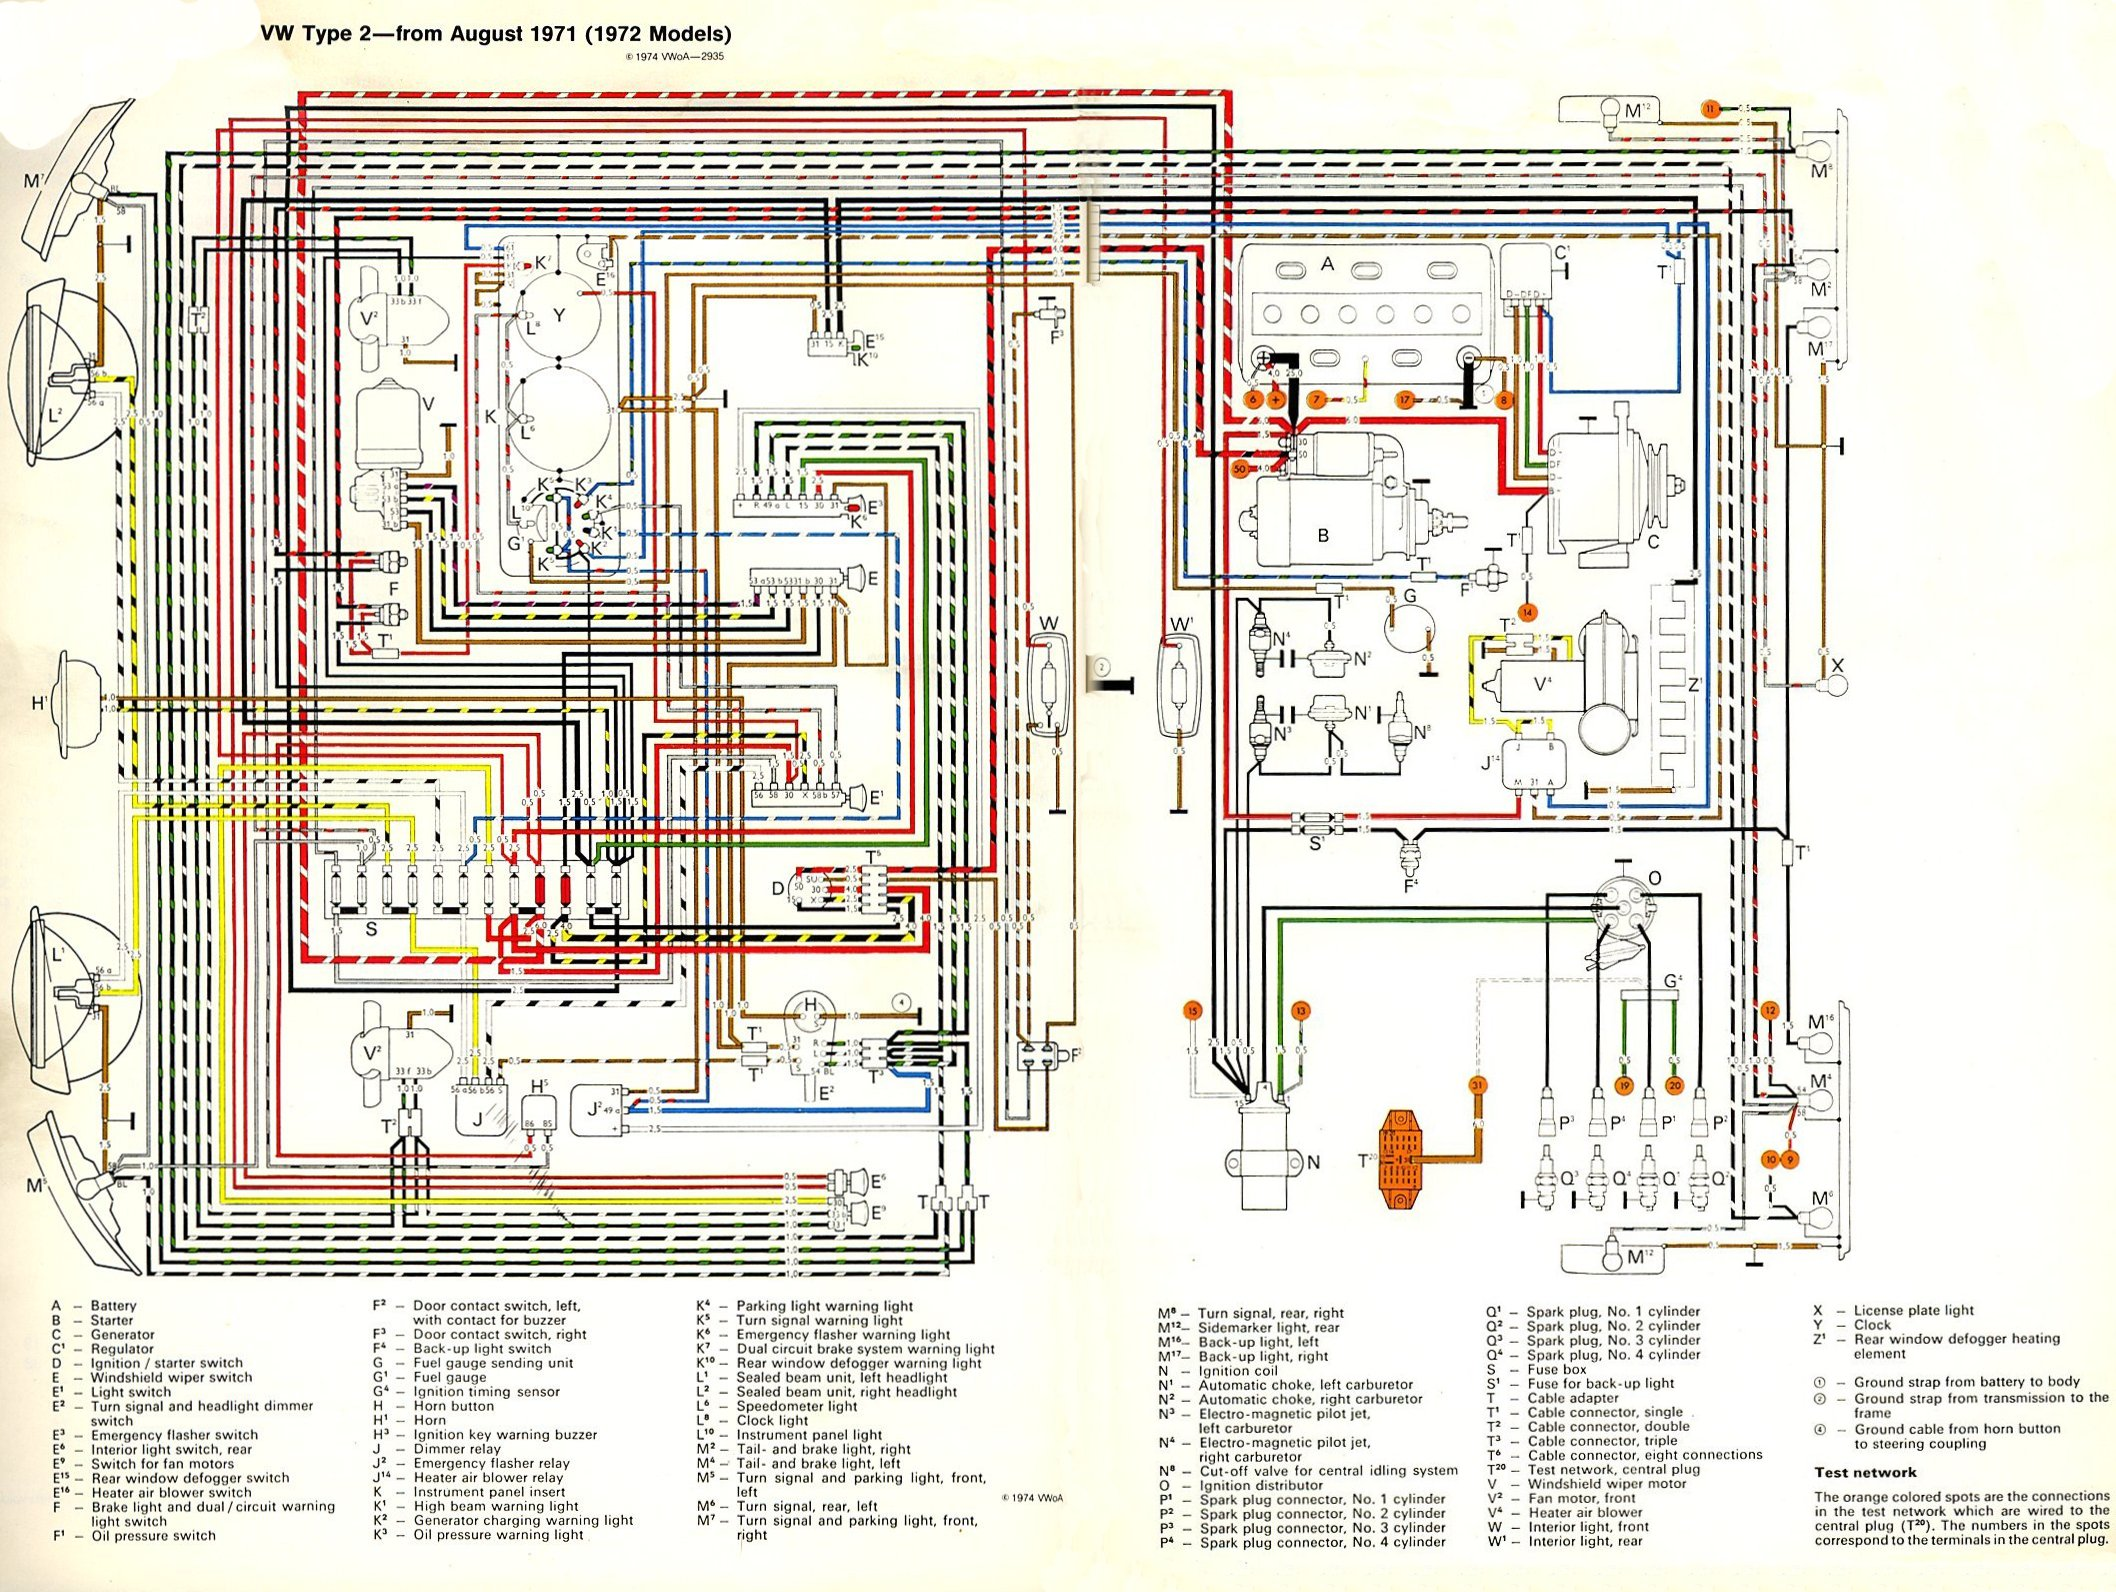 bus_1972_wiring 1972 corvette wiring diagram 1972 corvette ac wiring diagram Wiring Harness Diagram at fashall.co